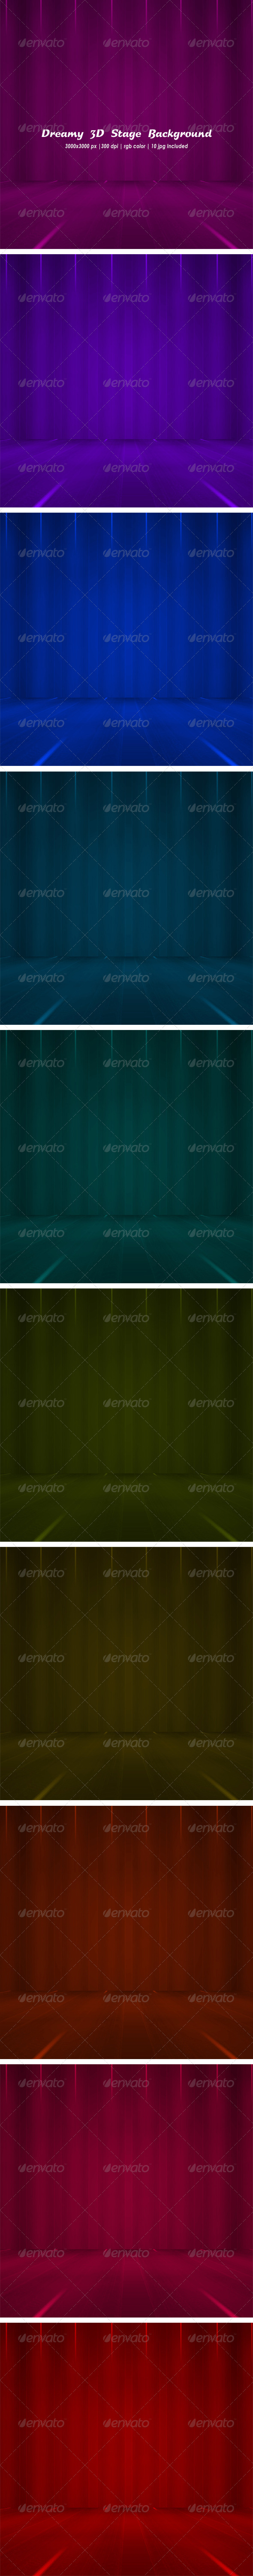 Dreamy 3d Stage Background Set - Backgrounds Graphics